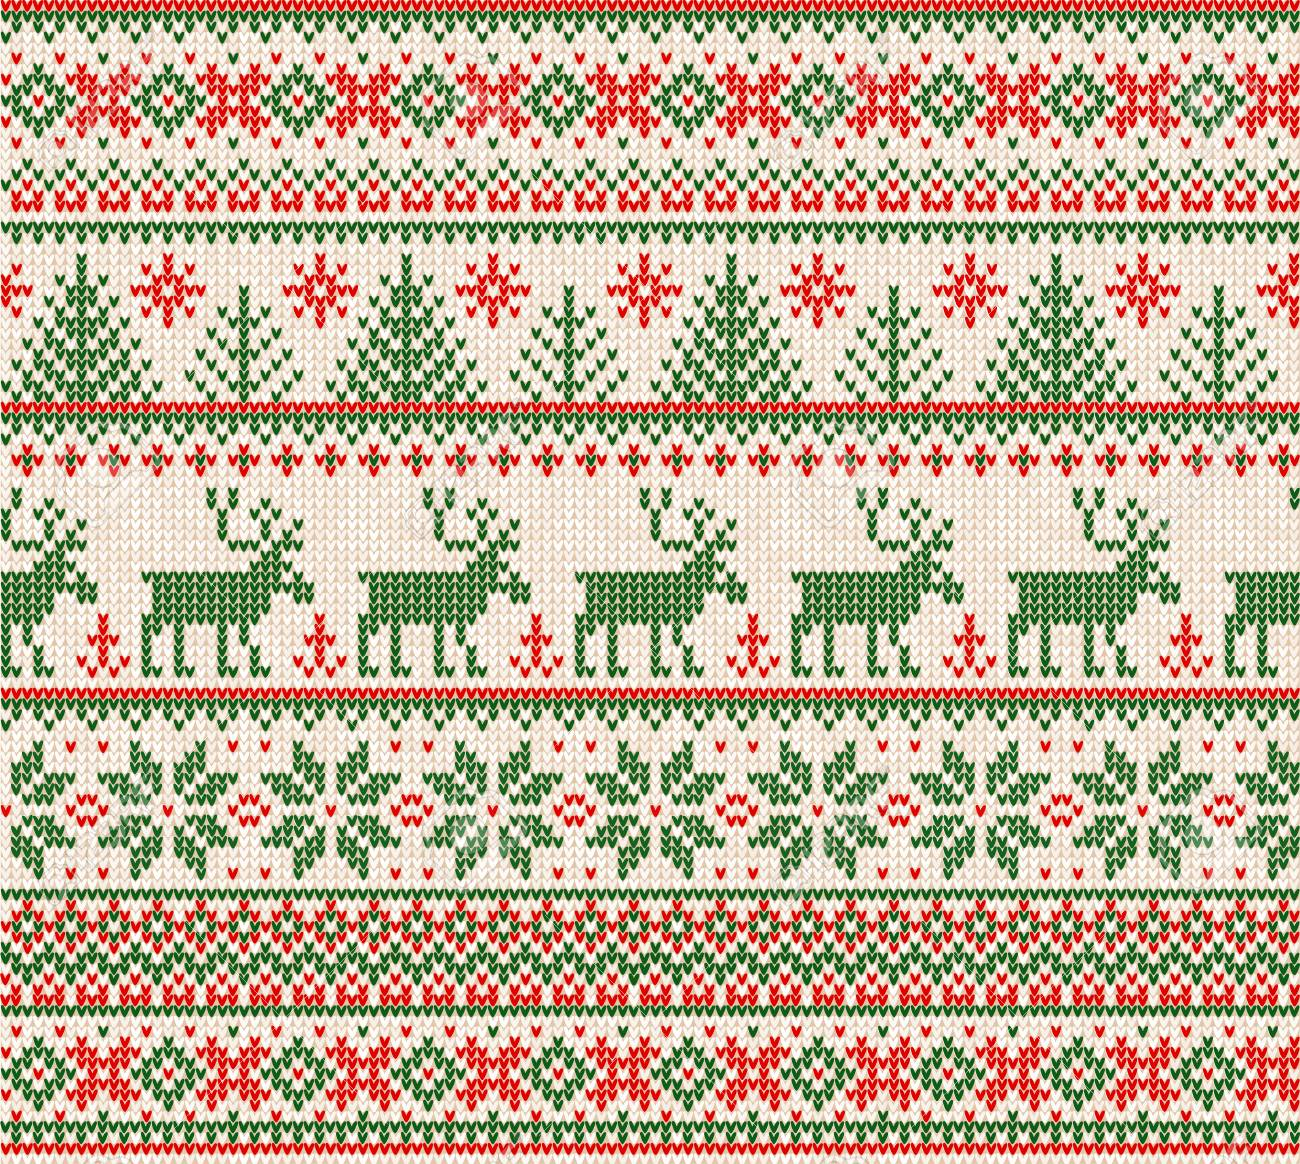 Ugly Sweater Merry Christmas Happy New Year Vector Illustration Royalty Free Cliparts Vectors And Stock Illustration Image 127716610